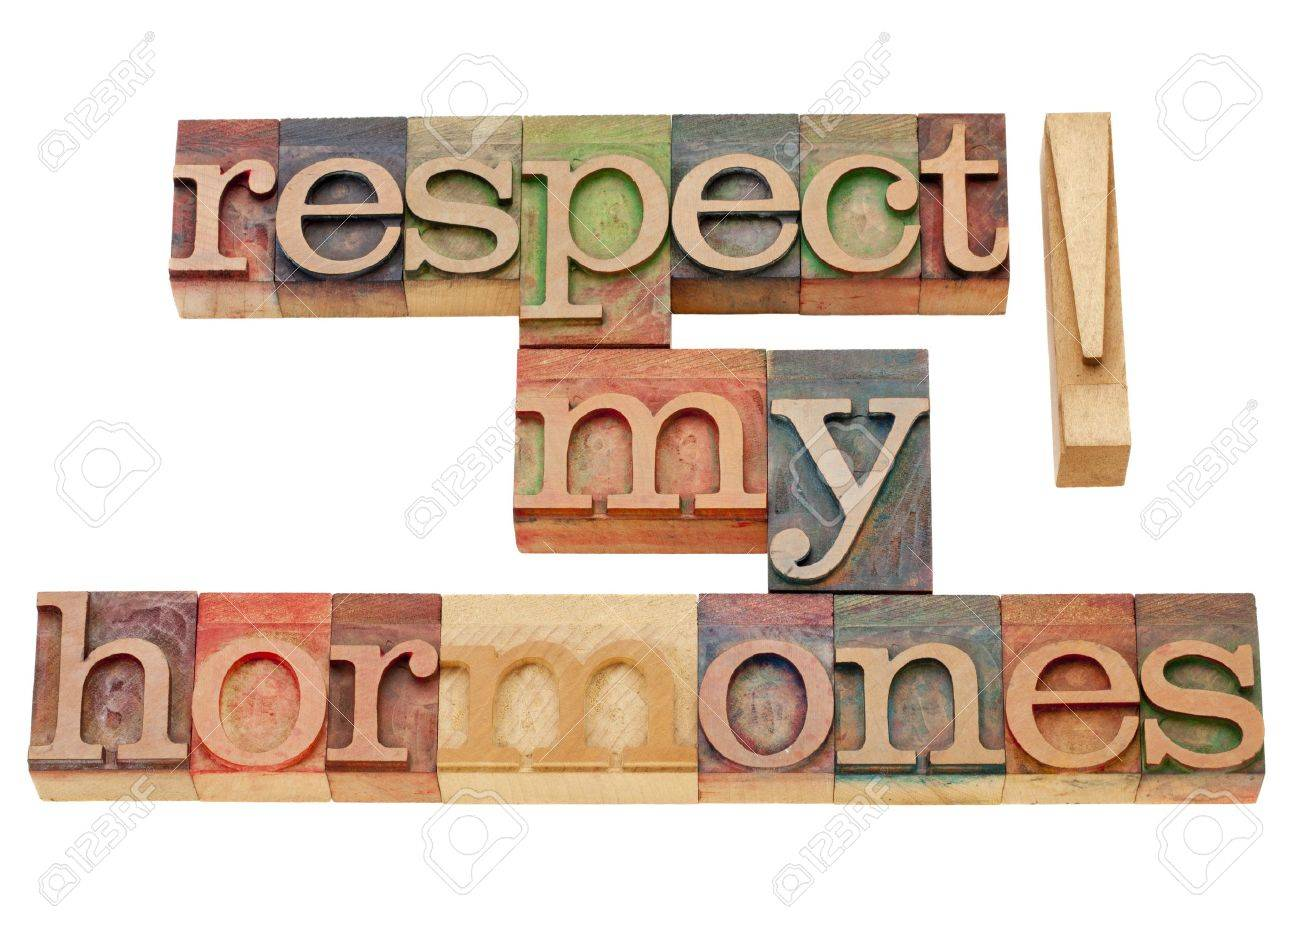 respect my hormones - warning concept - isolated text in vintage wood letterpress type Stock Photo - 10574401